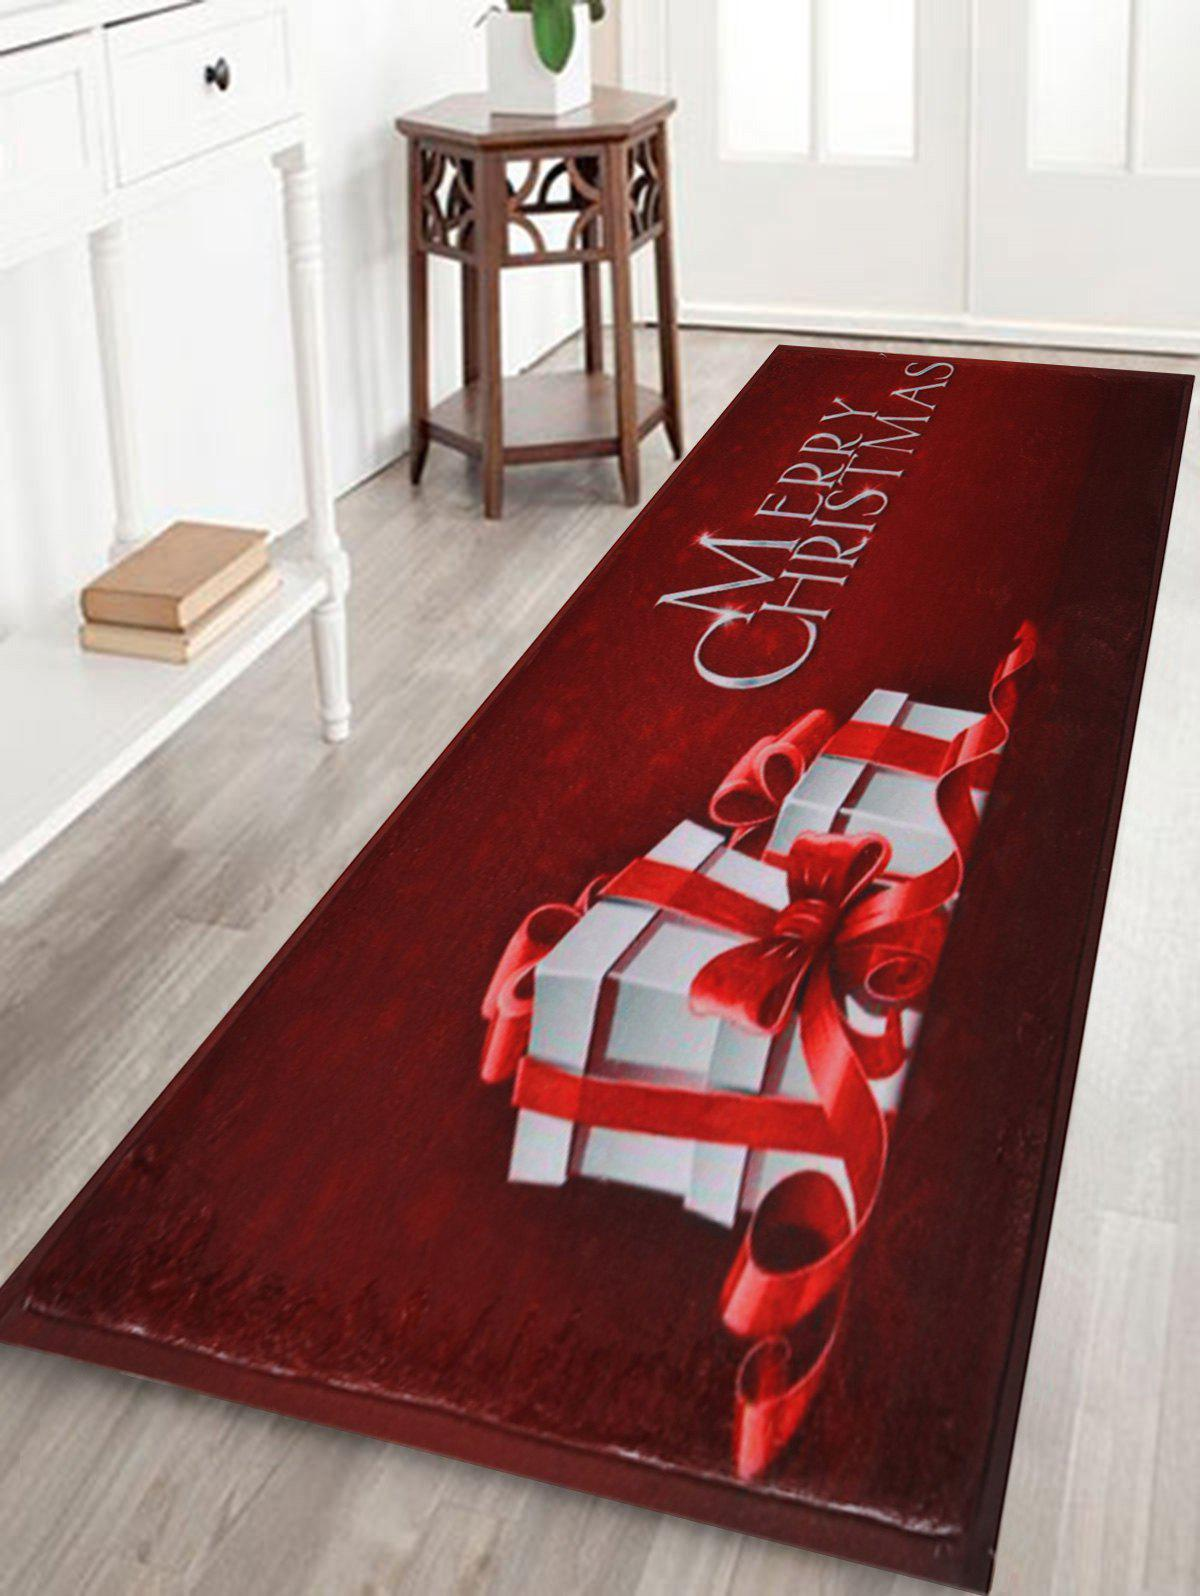 Merry Christmas Gift Skidproof Area RugHOME<br><br>Size: W16 INCH * L47 INCH; Color: DARK RED; Products Type: Bath rugs; Materials: Coral FLeece; Pattern: Gift,Letter; Style: Festival; Shape: Rectangular; Package Contents: 1 x Rug;